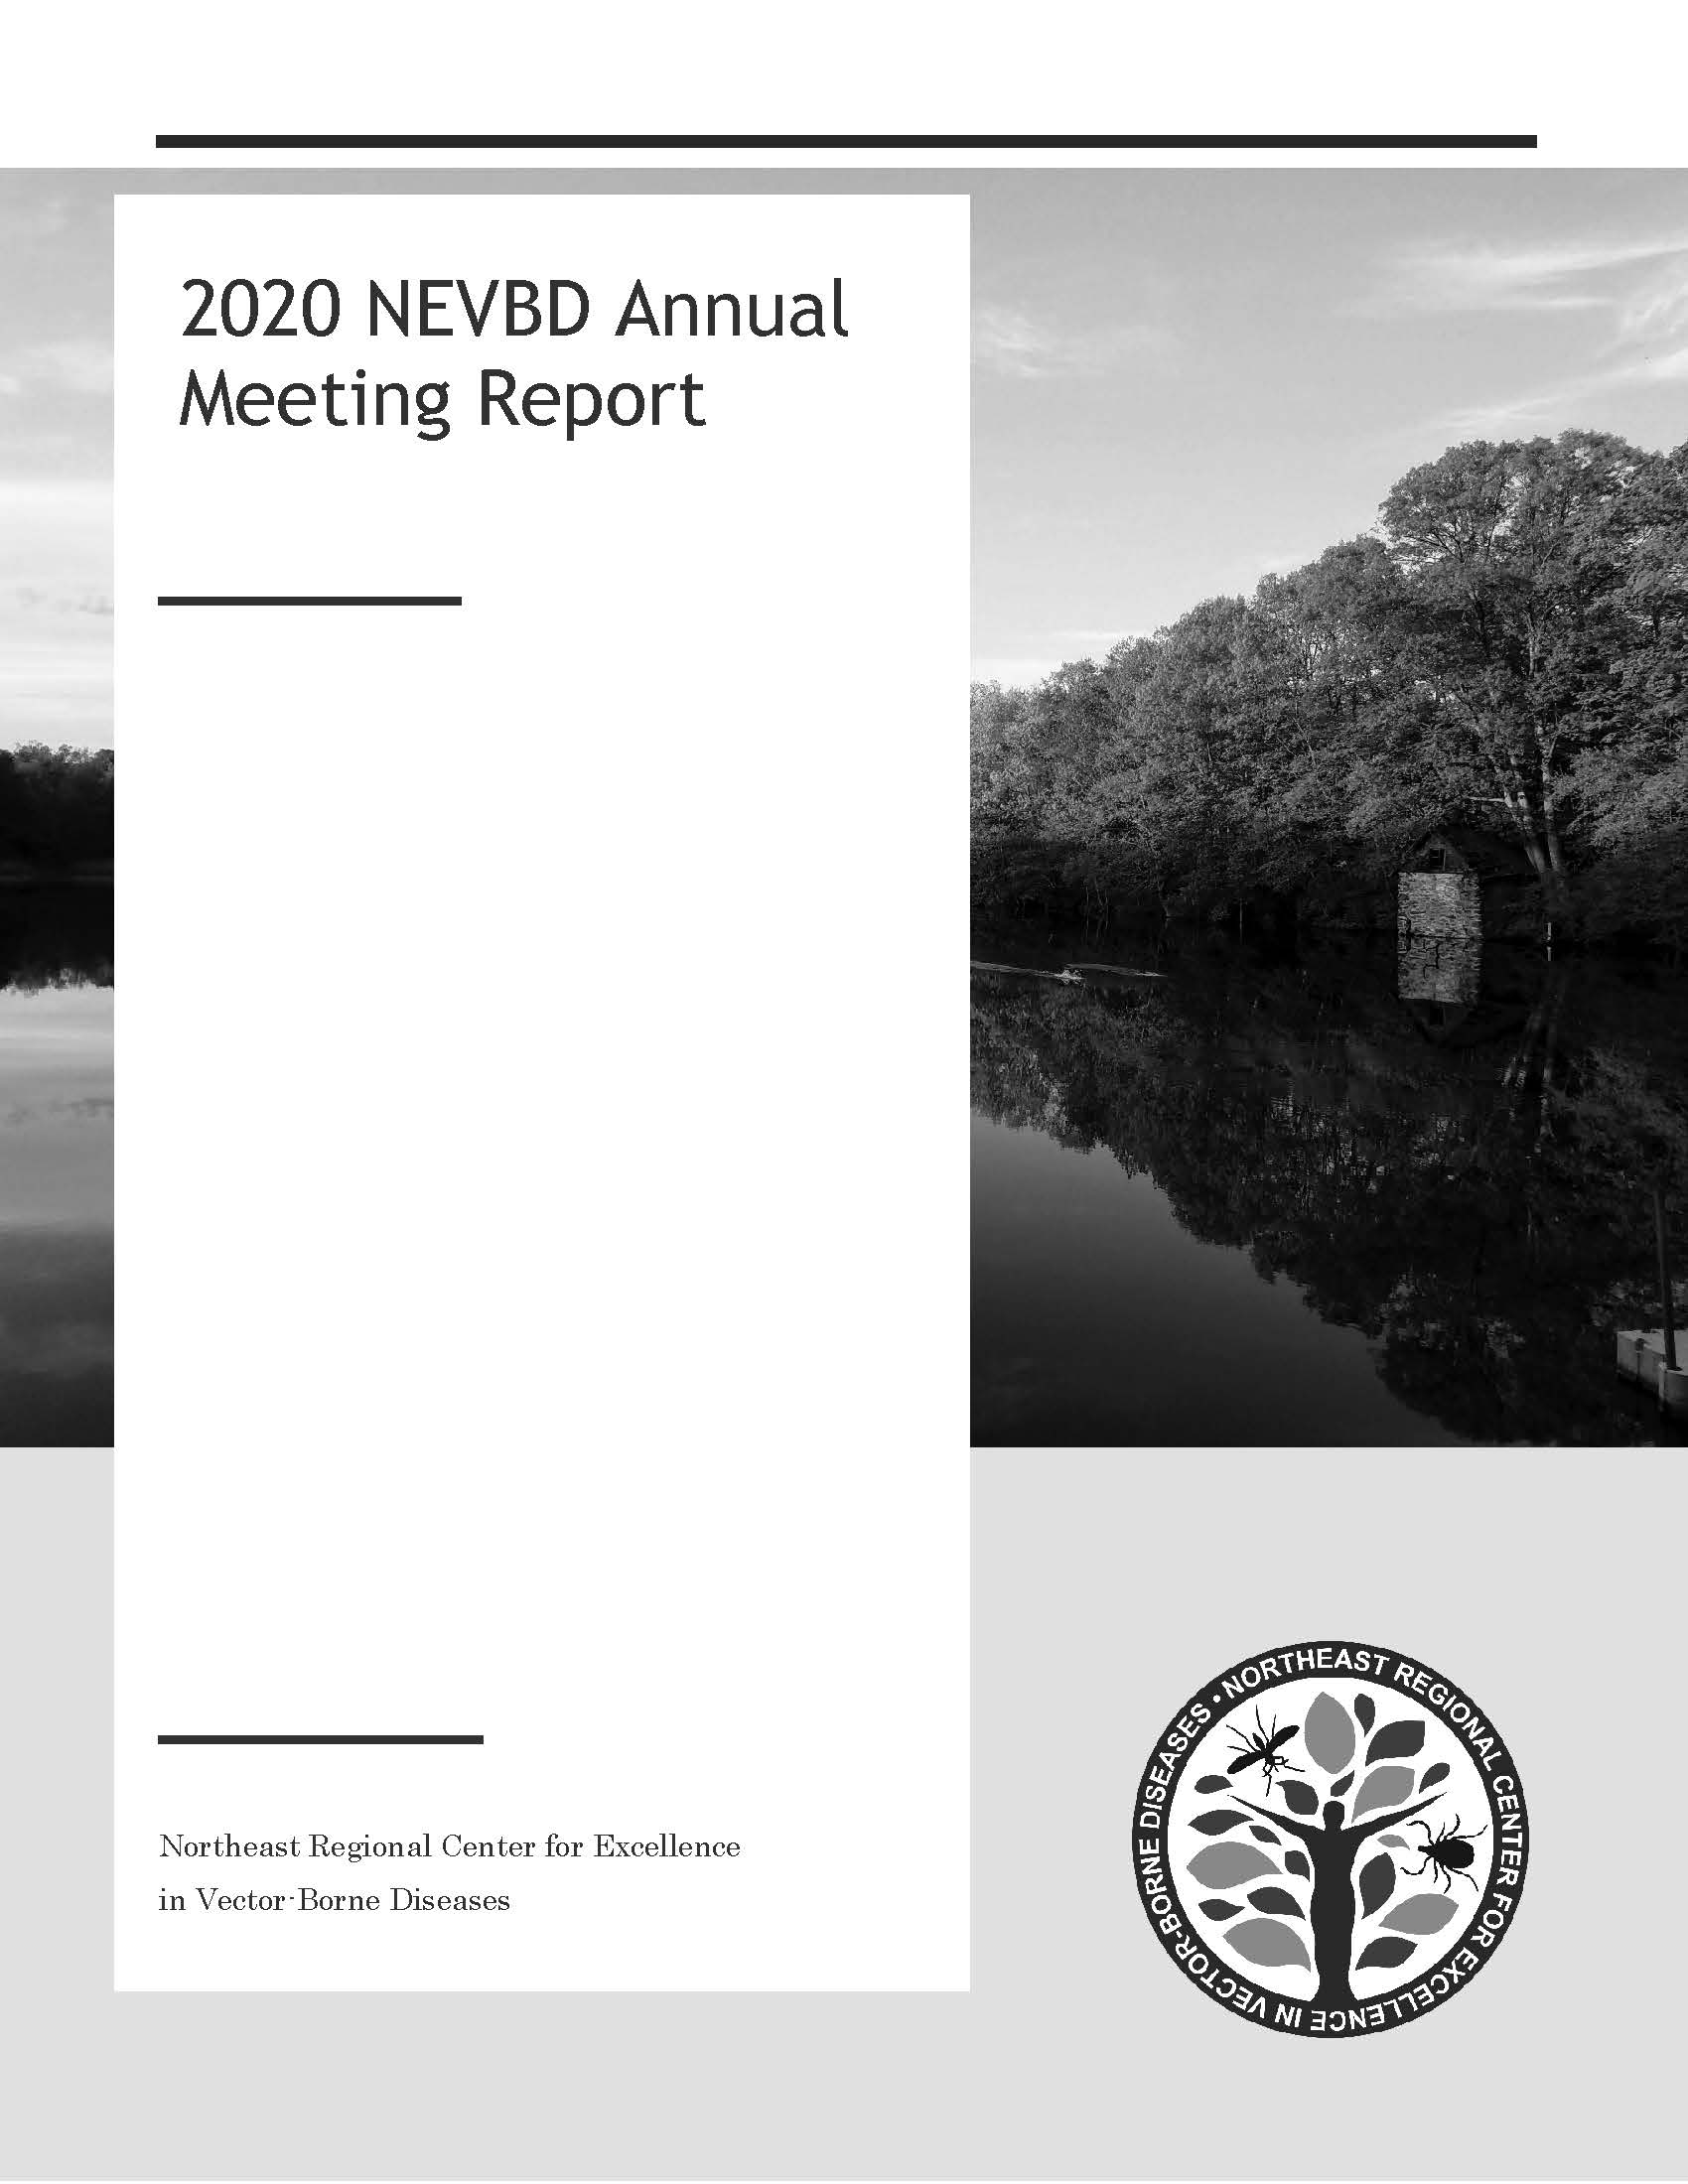 2020 Annual Meeting Report